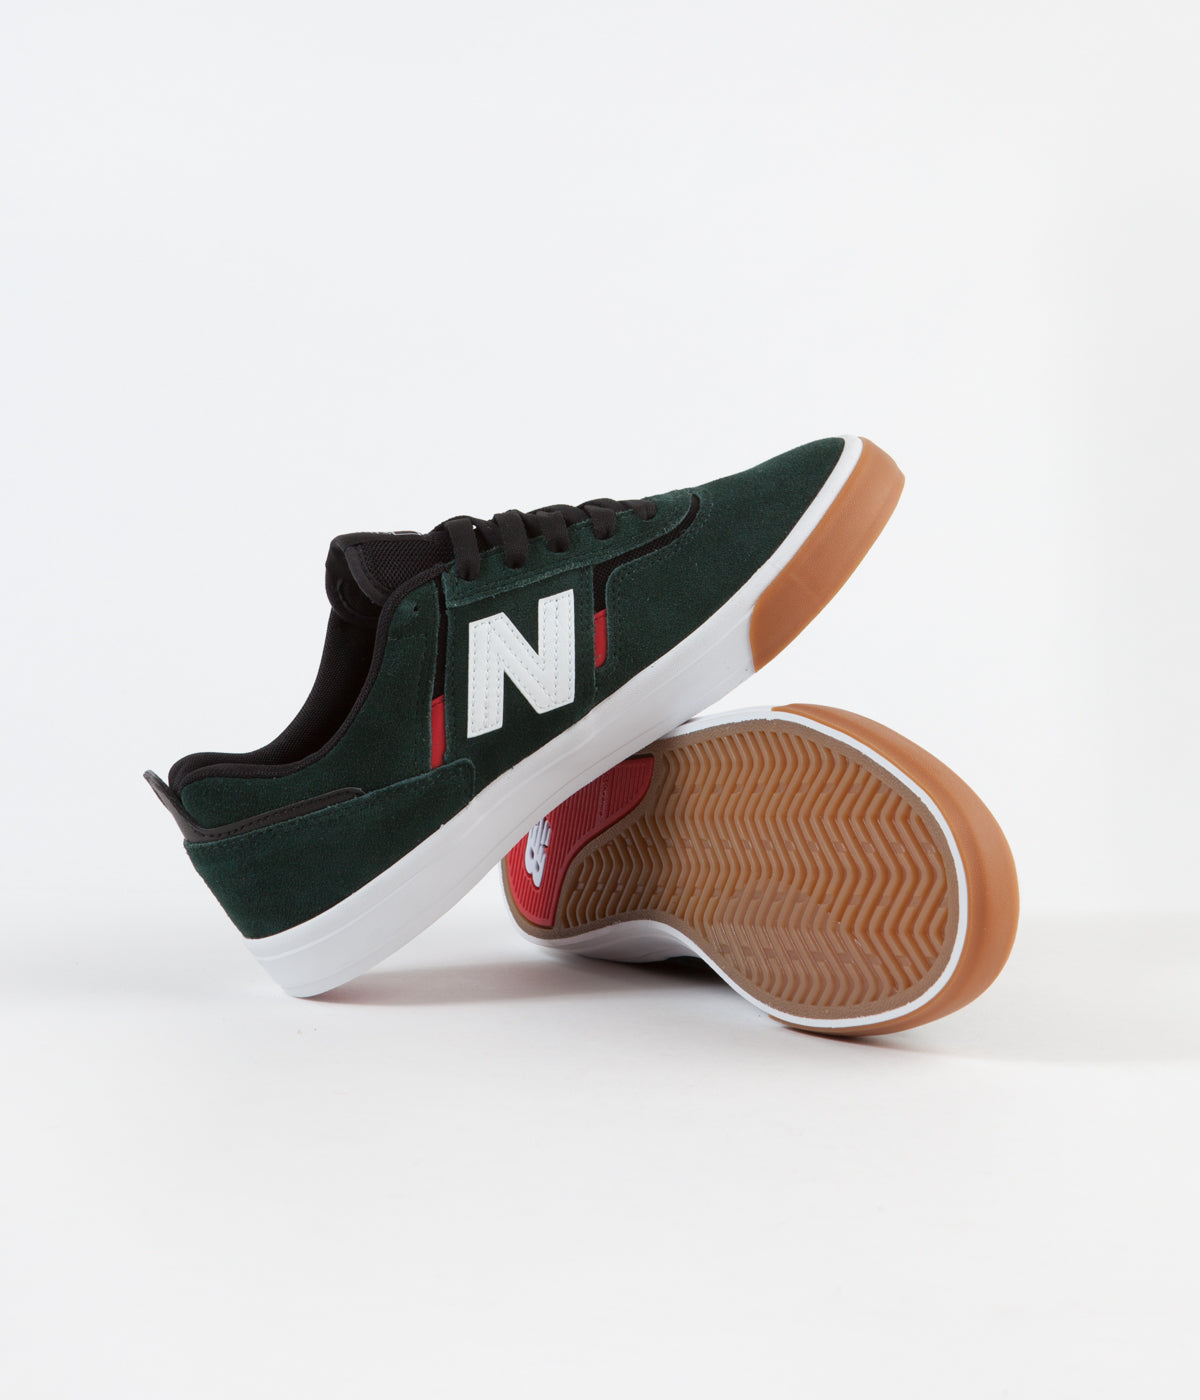 New Balance Numeric 306 Jamie Foy Shoes - Green / Red